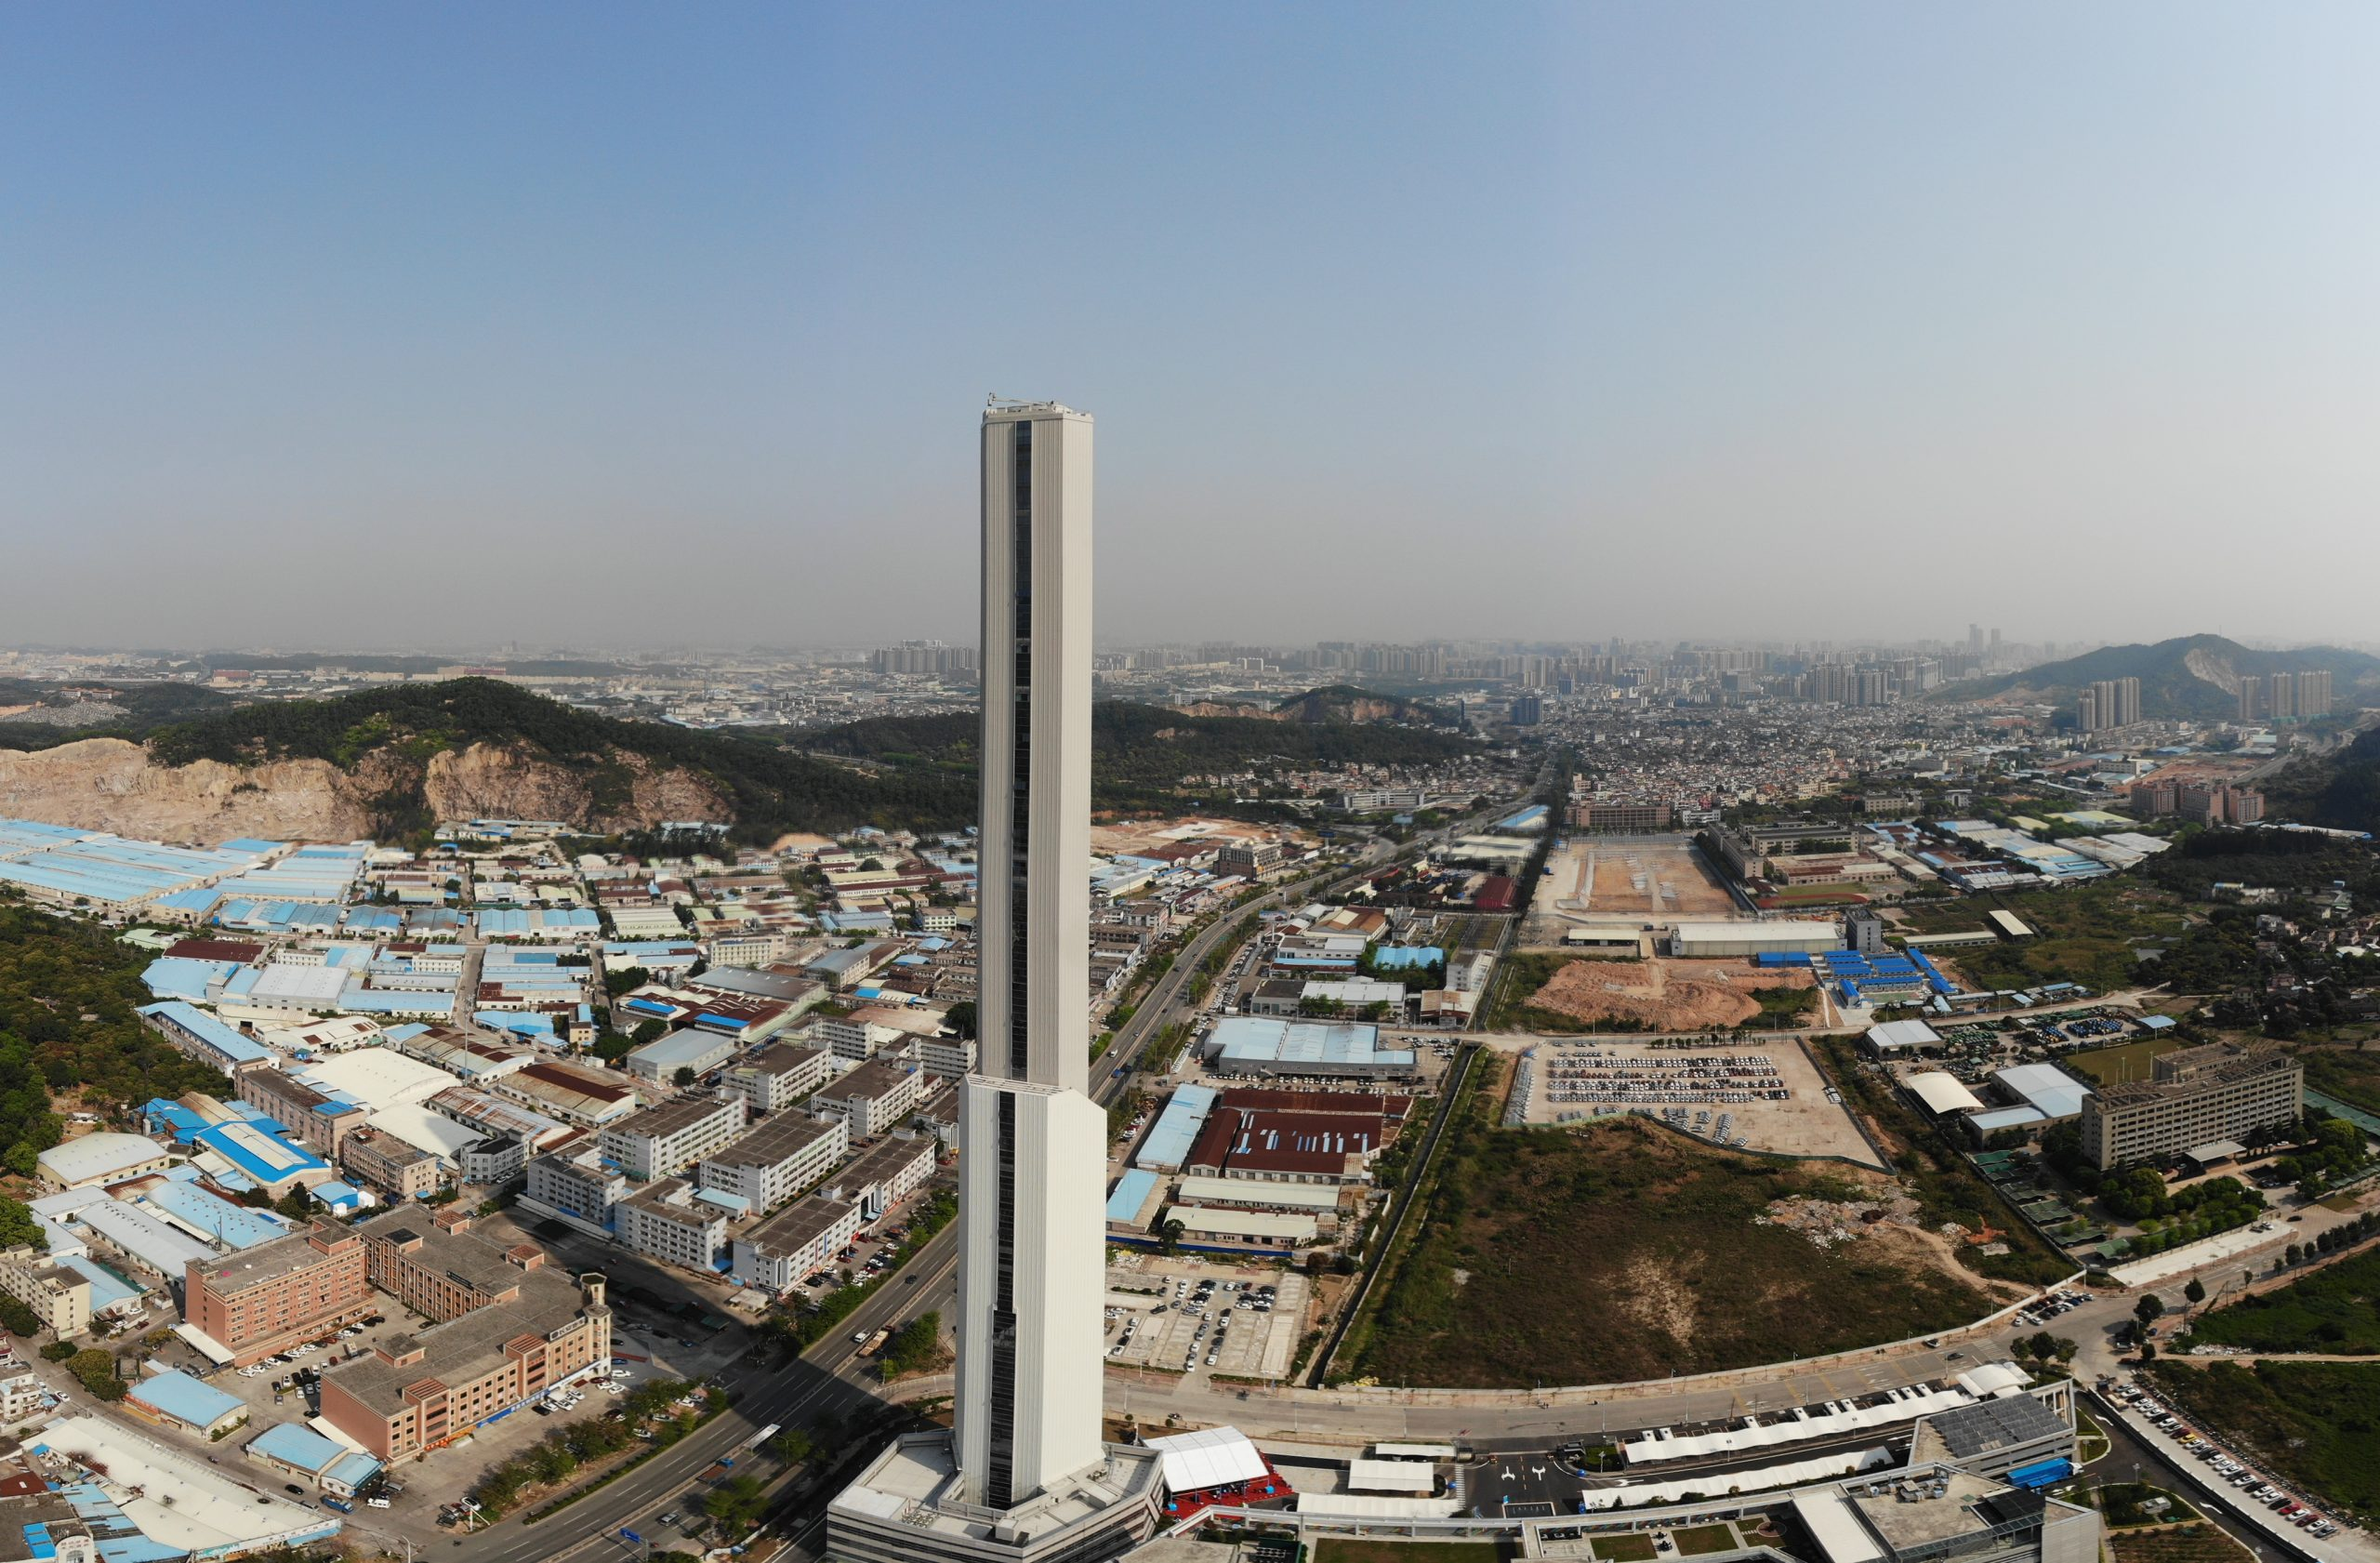 INTERVIEW. Why thyssenkrupp Elevator Chose China for Their New Test Tower